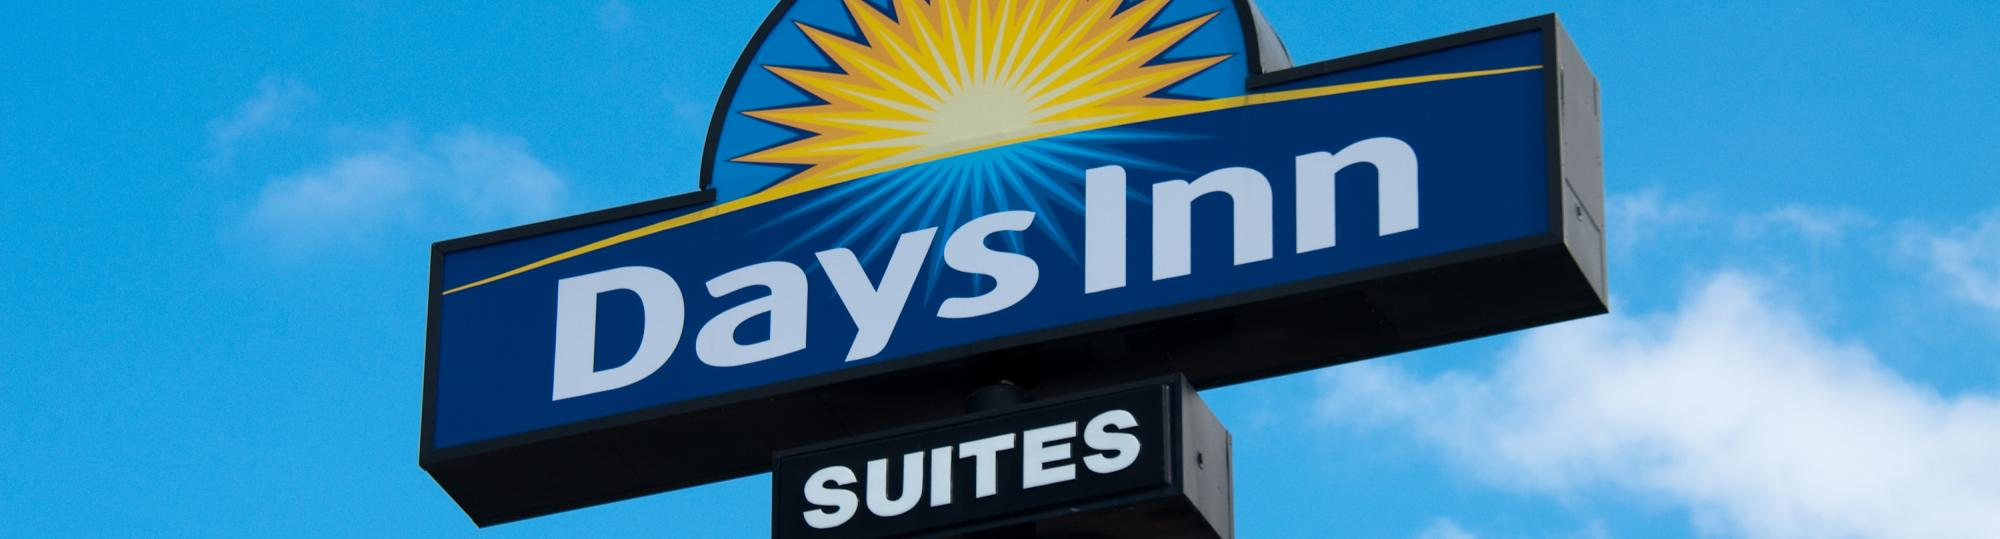 Days Inn Military Discounts with Veterans Advantage